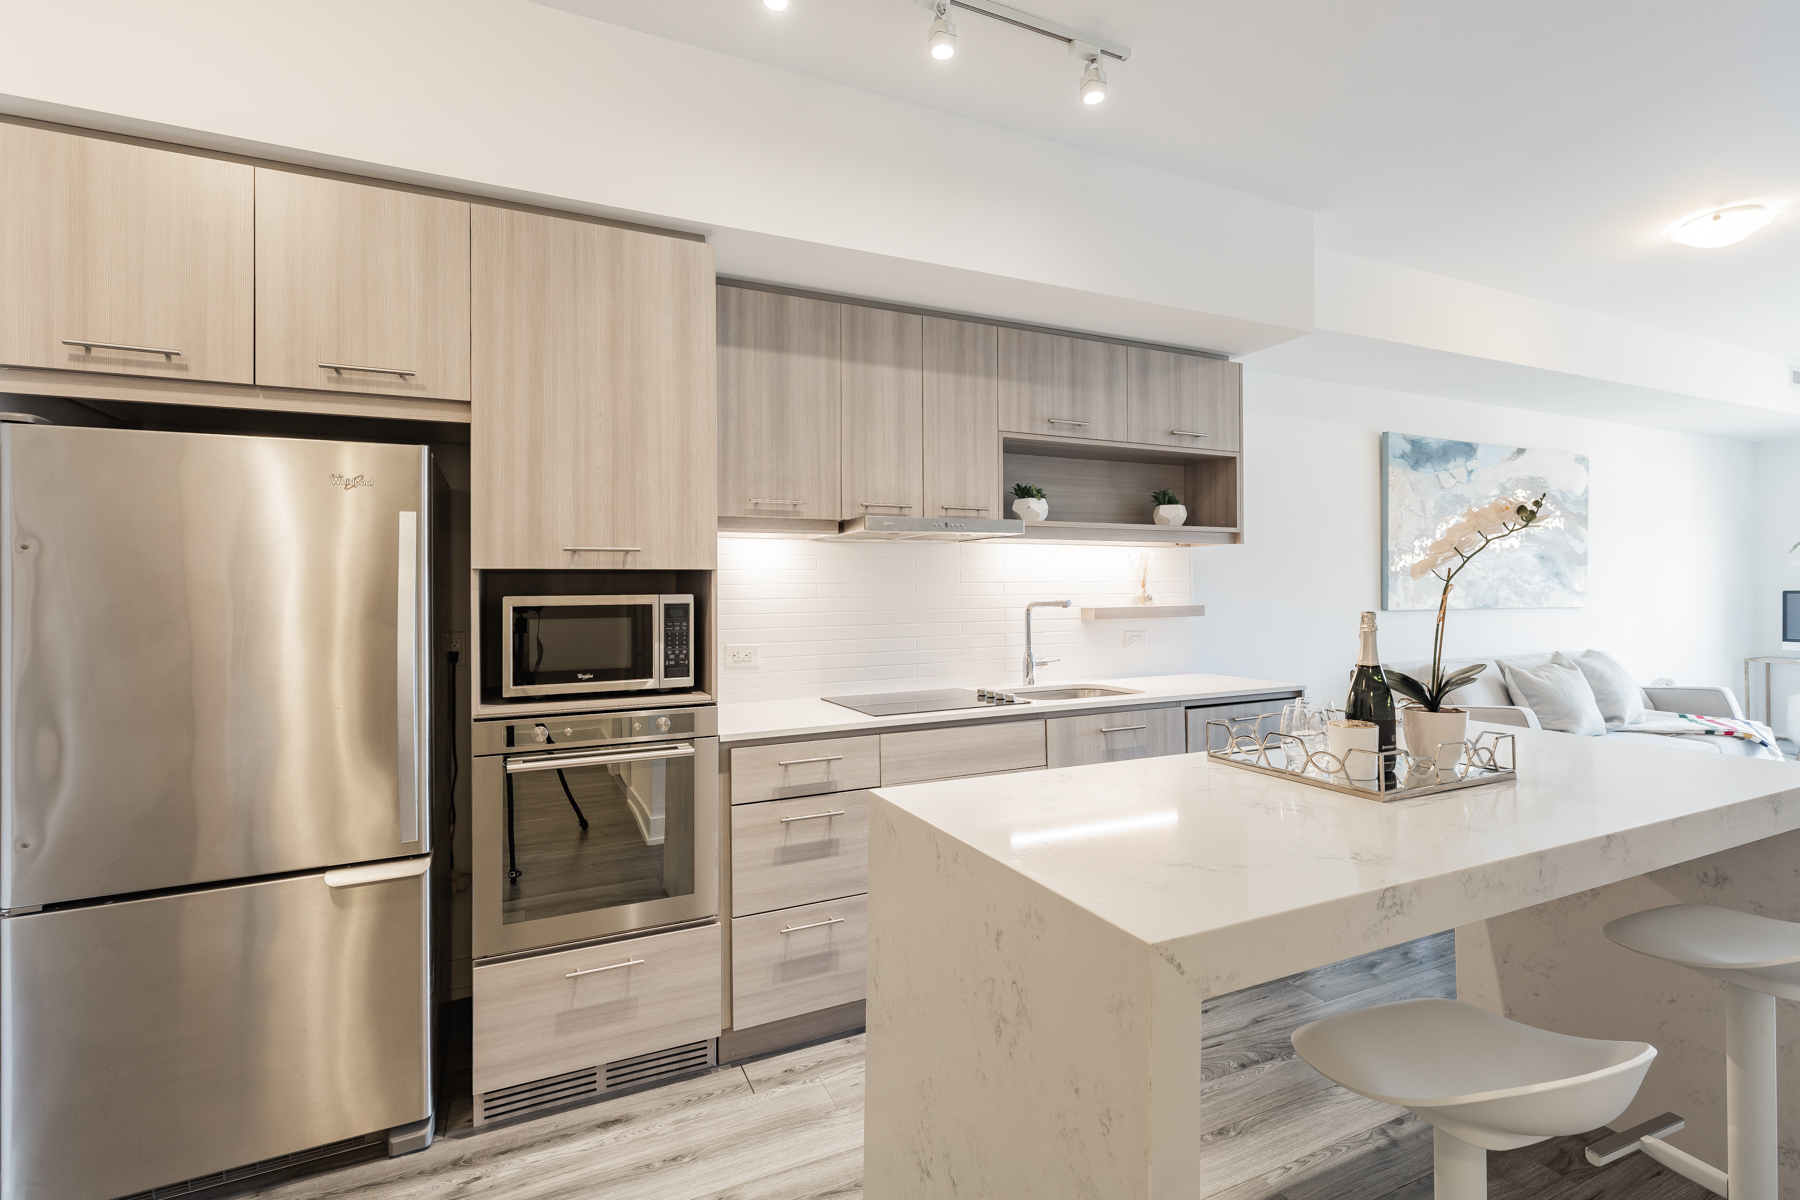 Contemporary condo kitchen with wood cabinets and white counters.